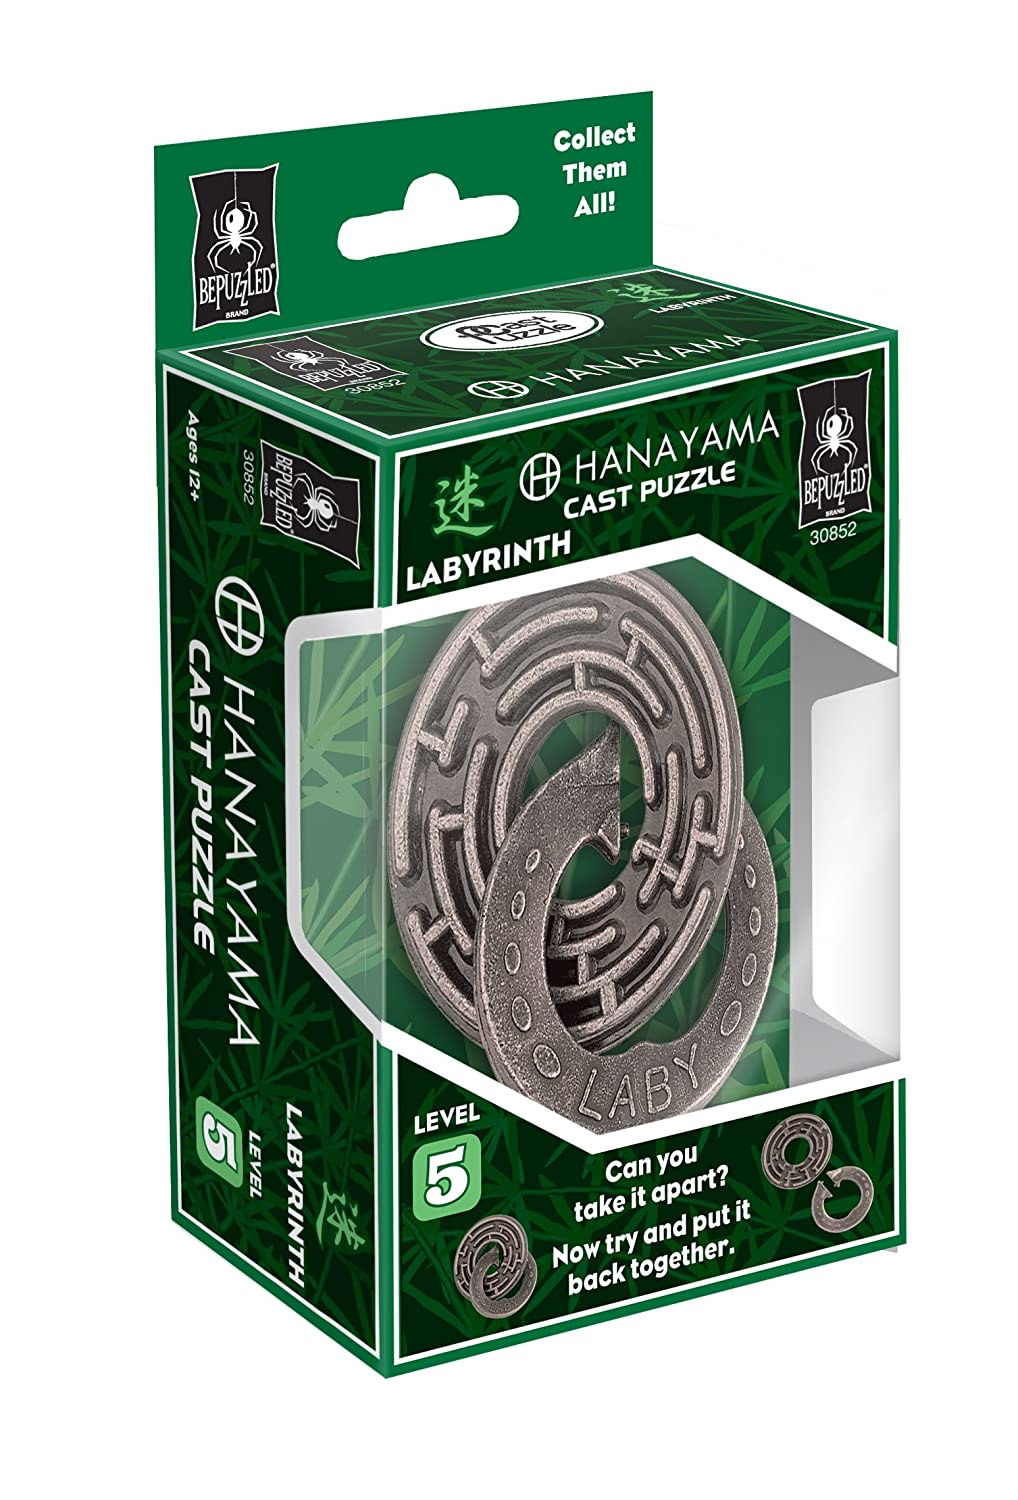 B0038BCMYU Bepuzzled LABYRINTH Hanayama Cast Metal Brain Teaser Puzzle (Level 5) Puzzles For Kids and Adults Ages 12 and Up 81zHI6FpyjL